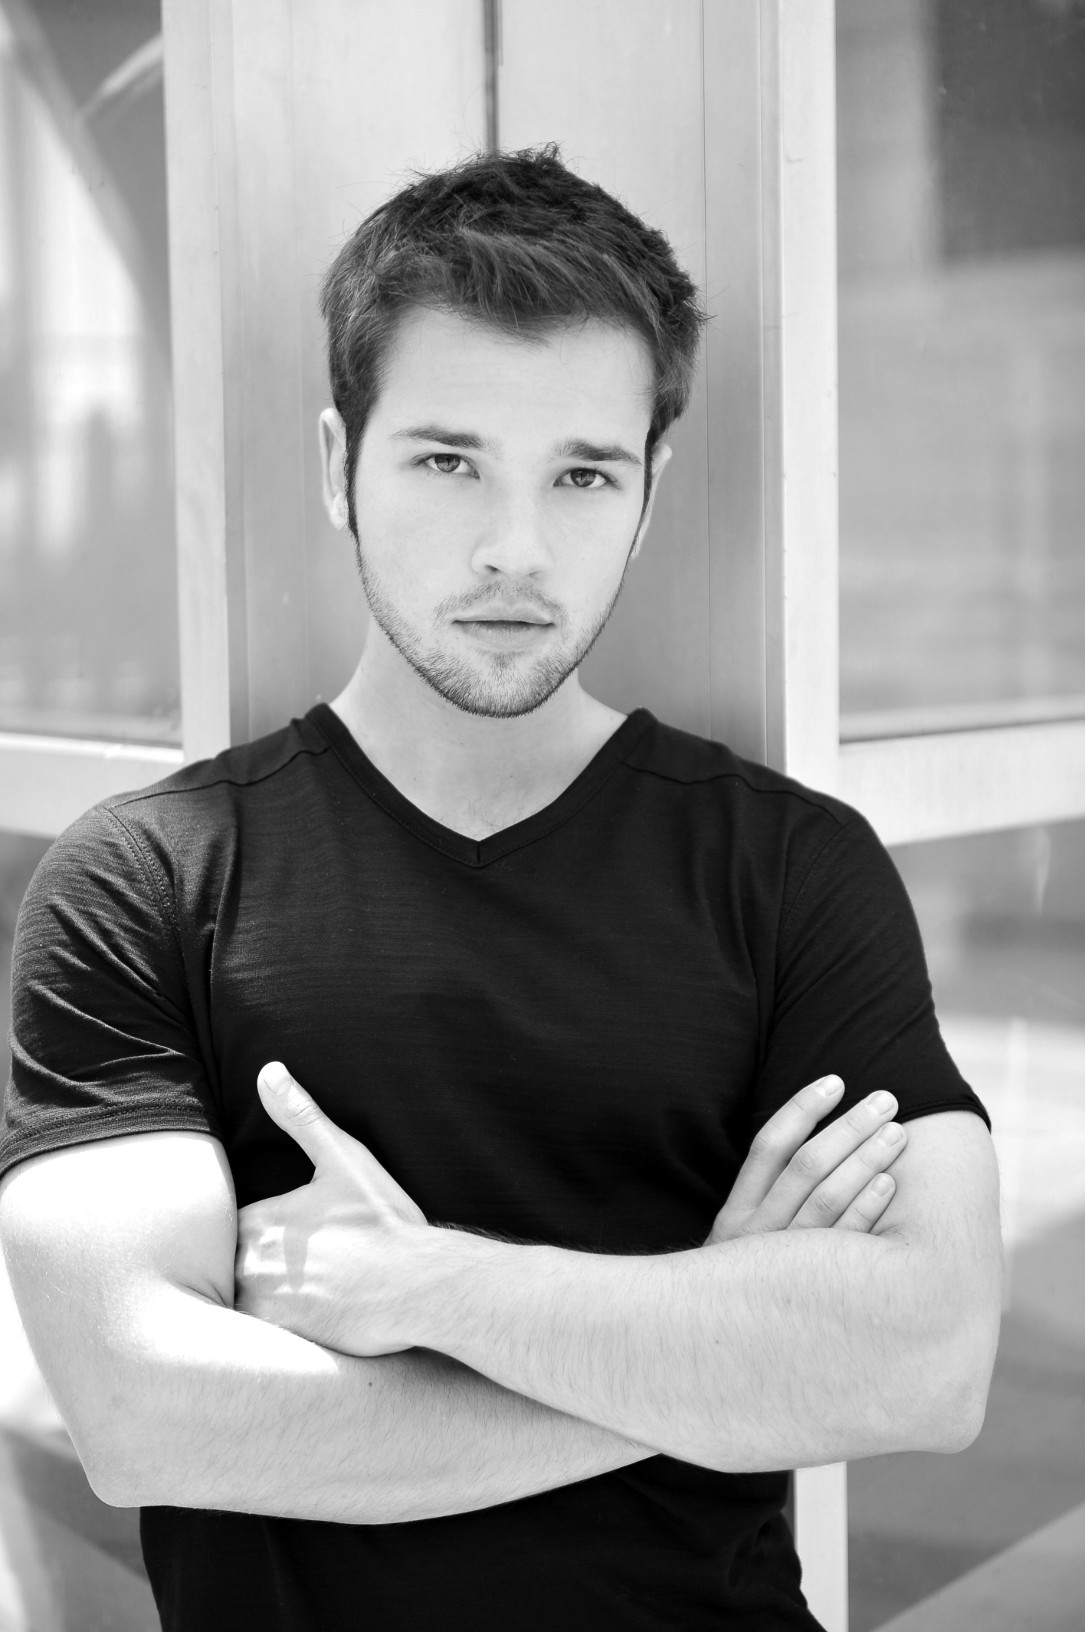 icarly star nathan kress to walk red carpet with local. Black Bedroom Furniture Sets. Home Design Ideas